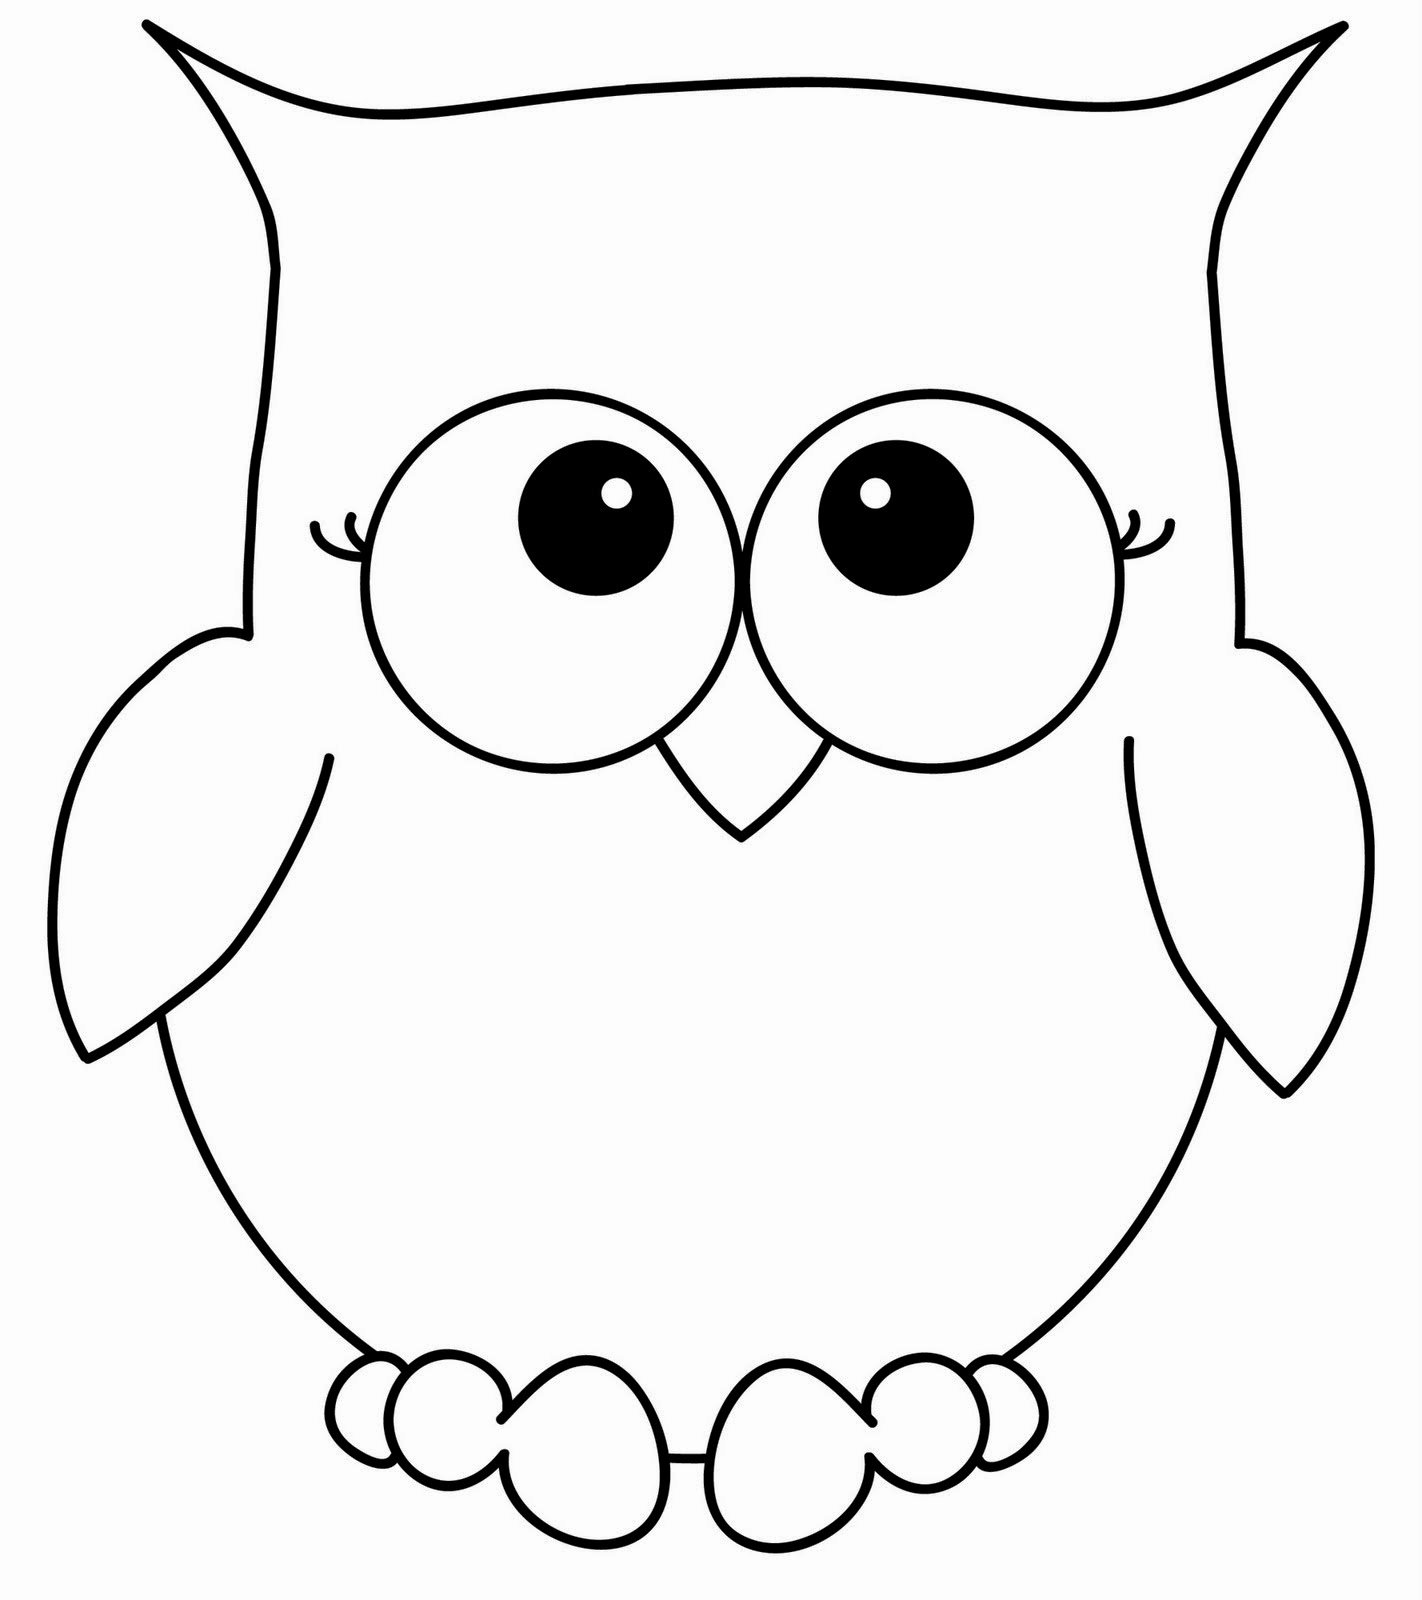 Free Printable Owl Template Inspirational Selimut Ku Cute Lil Owl